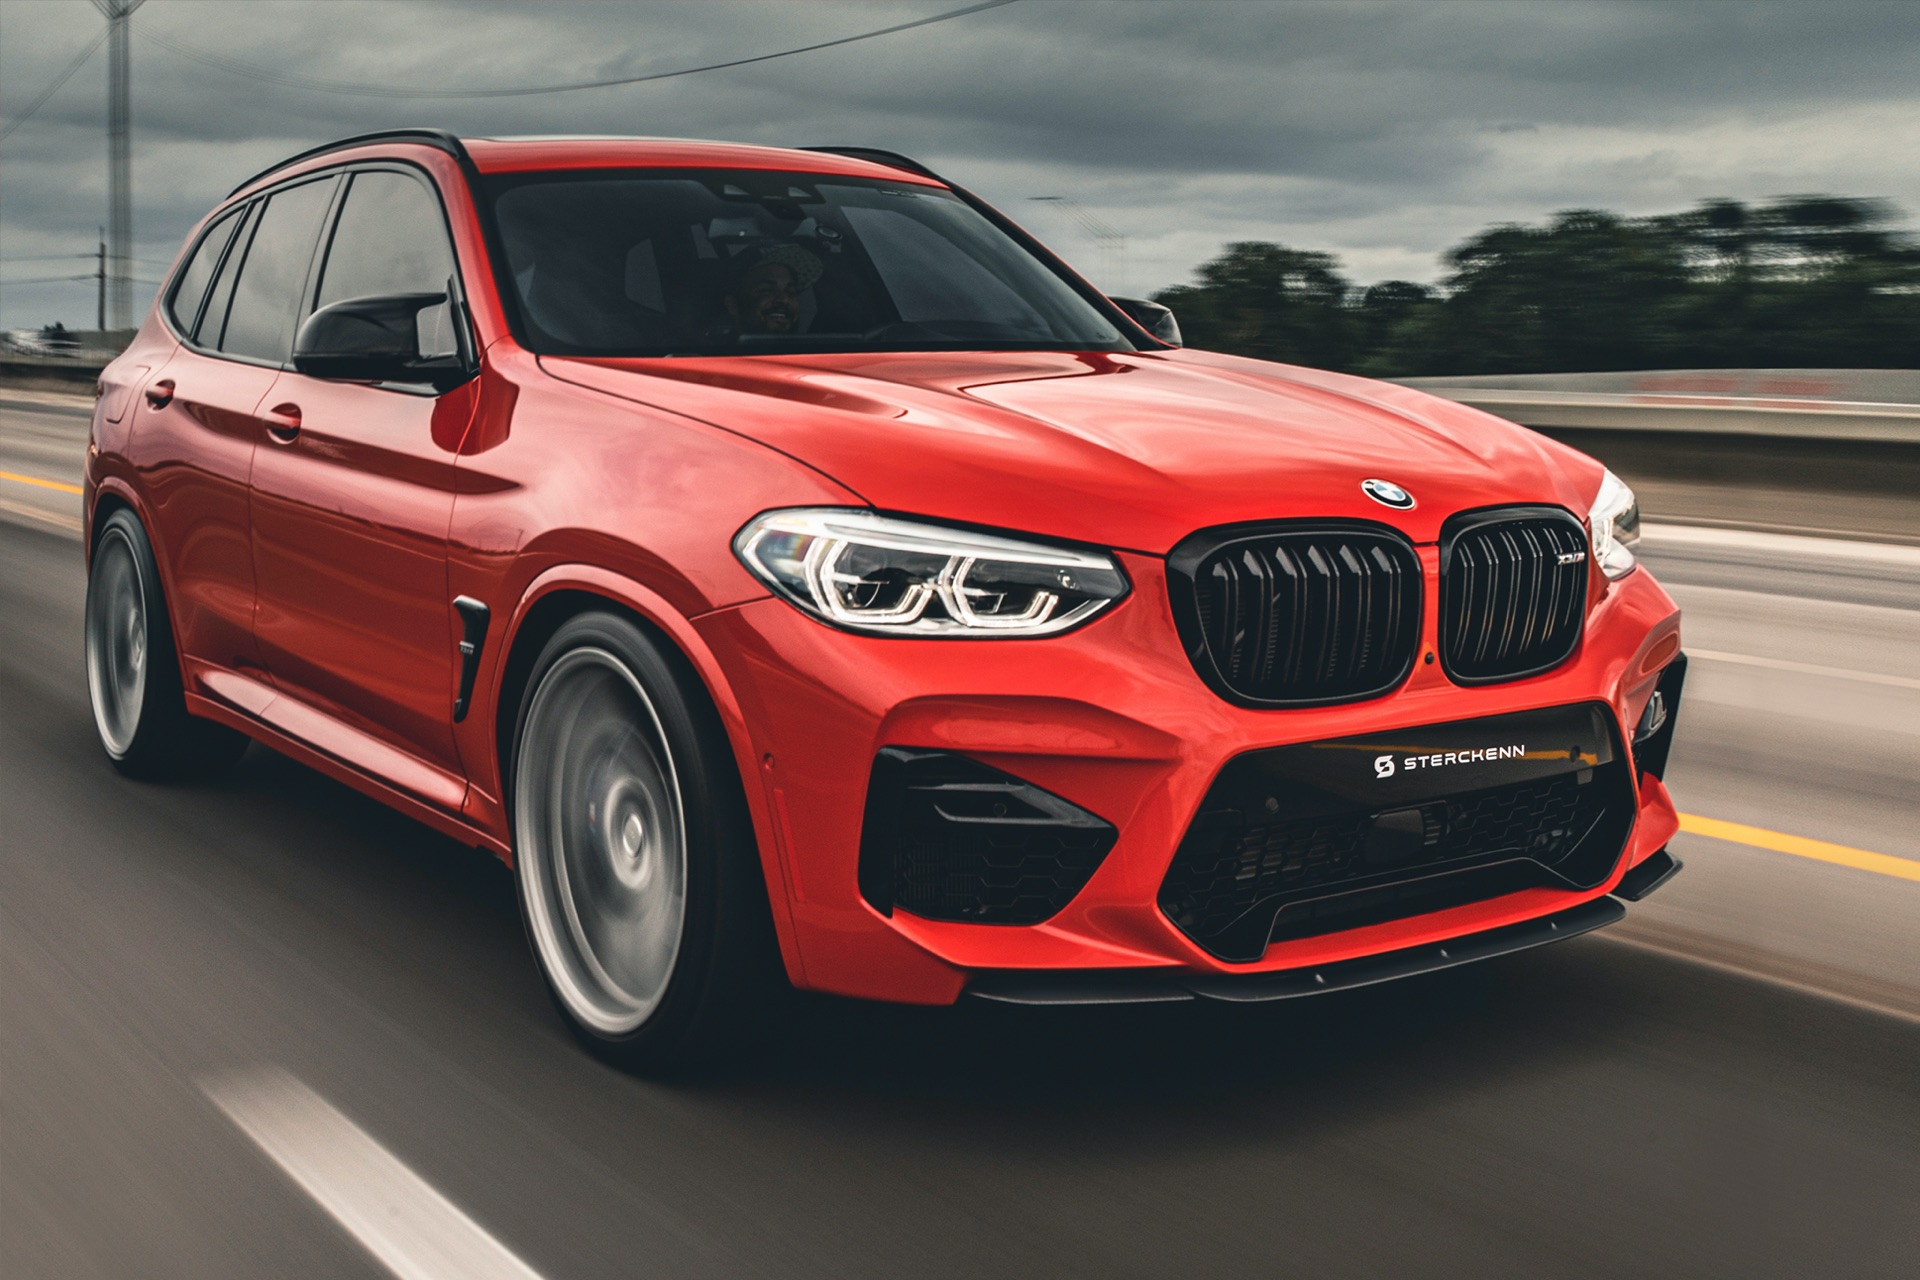 BMW_X3_M_by_Sterckenn_0000